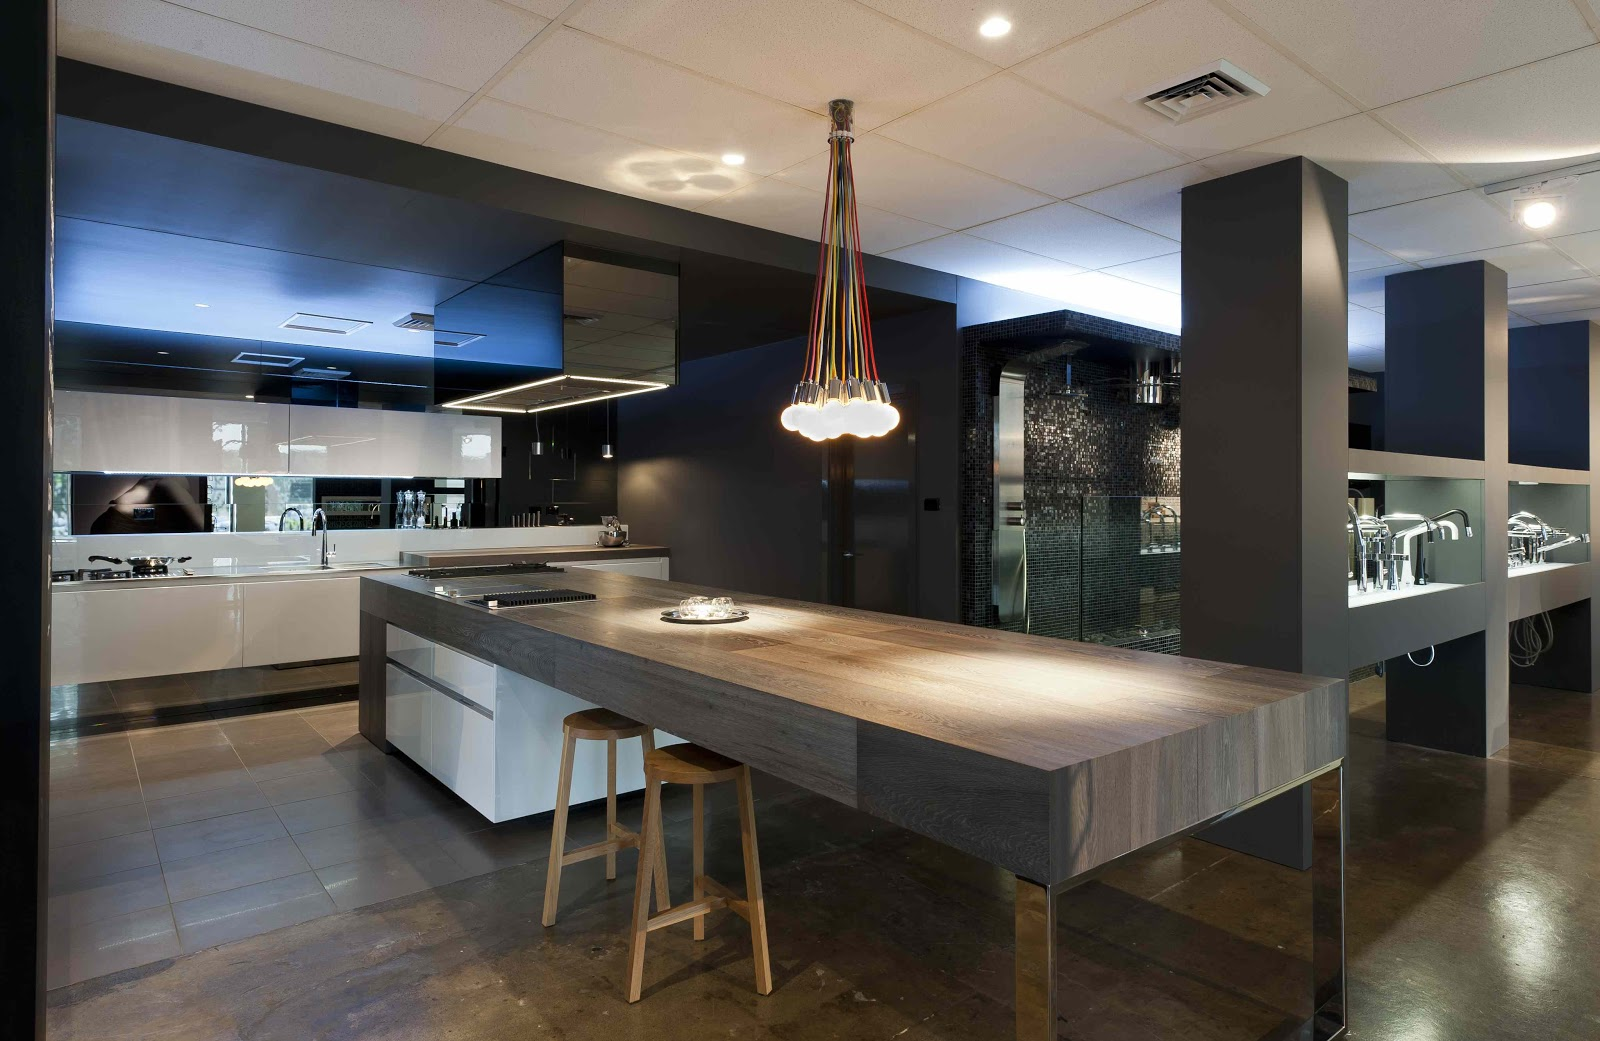 Kitchen Designs Australia Minosa The Cooks Kitchen In South Melbourne By Minosa